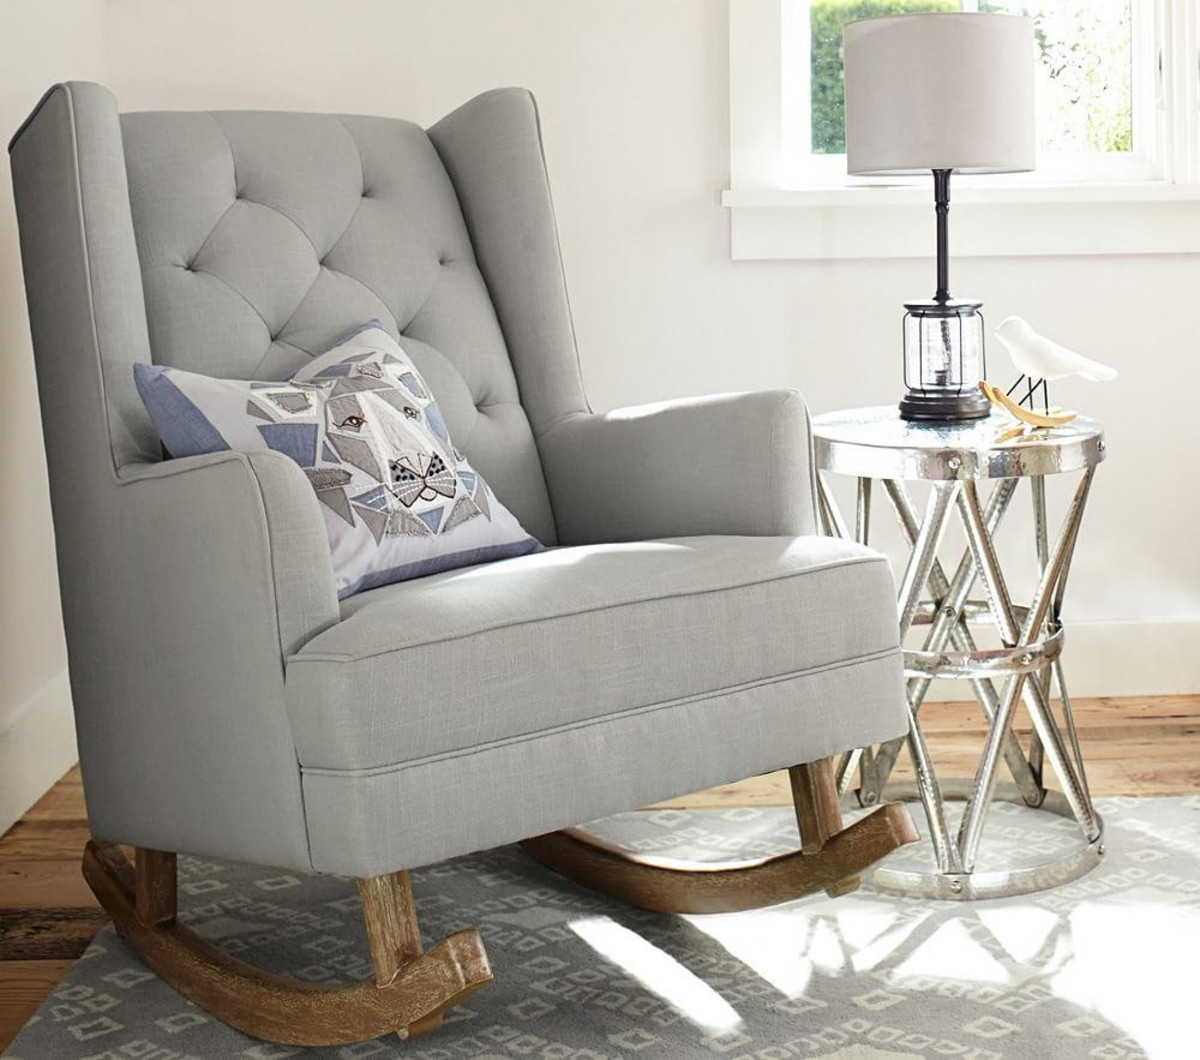 Ottomans : Navy Blue Glider And Ottoman Furniture Nursery Room Within Popular Rocking Chairs For Nursery (View 8 of 15)